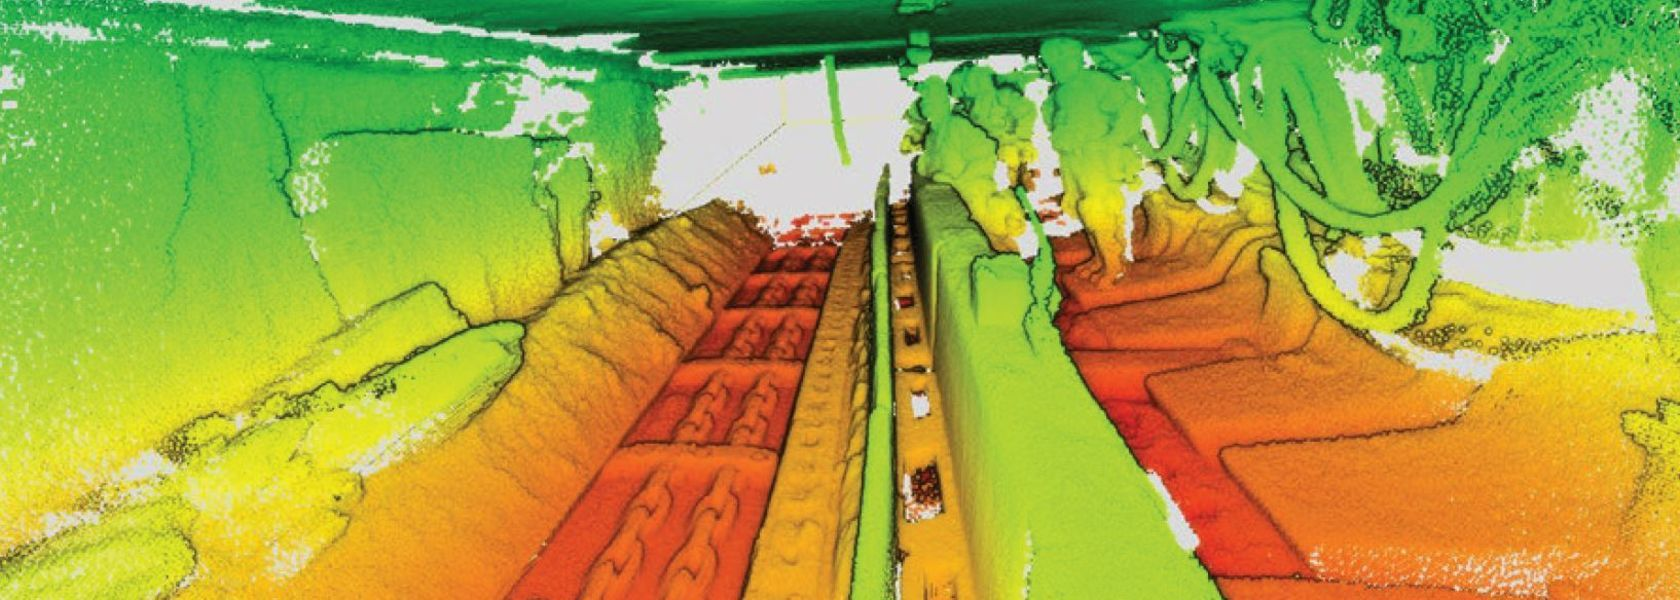 ExScan laser scanner racking up users